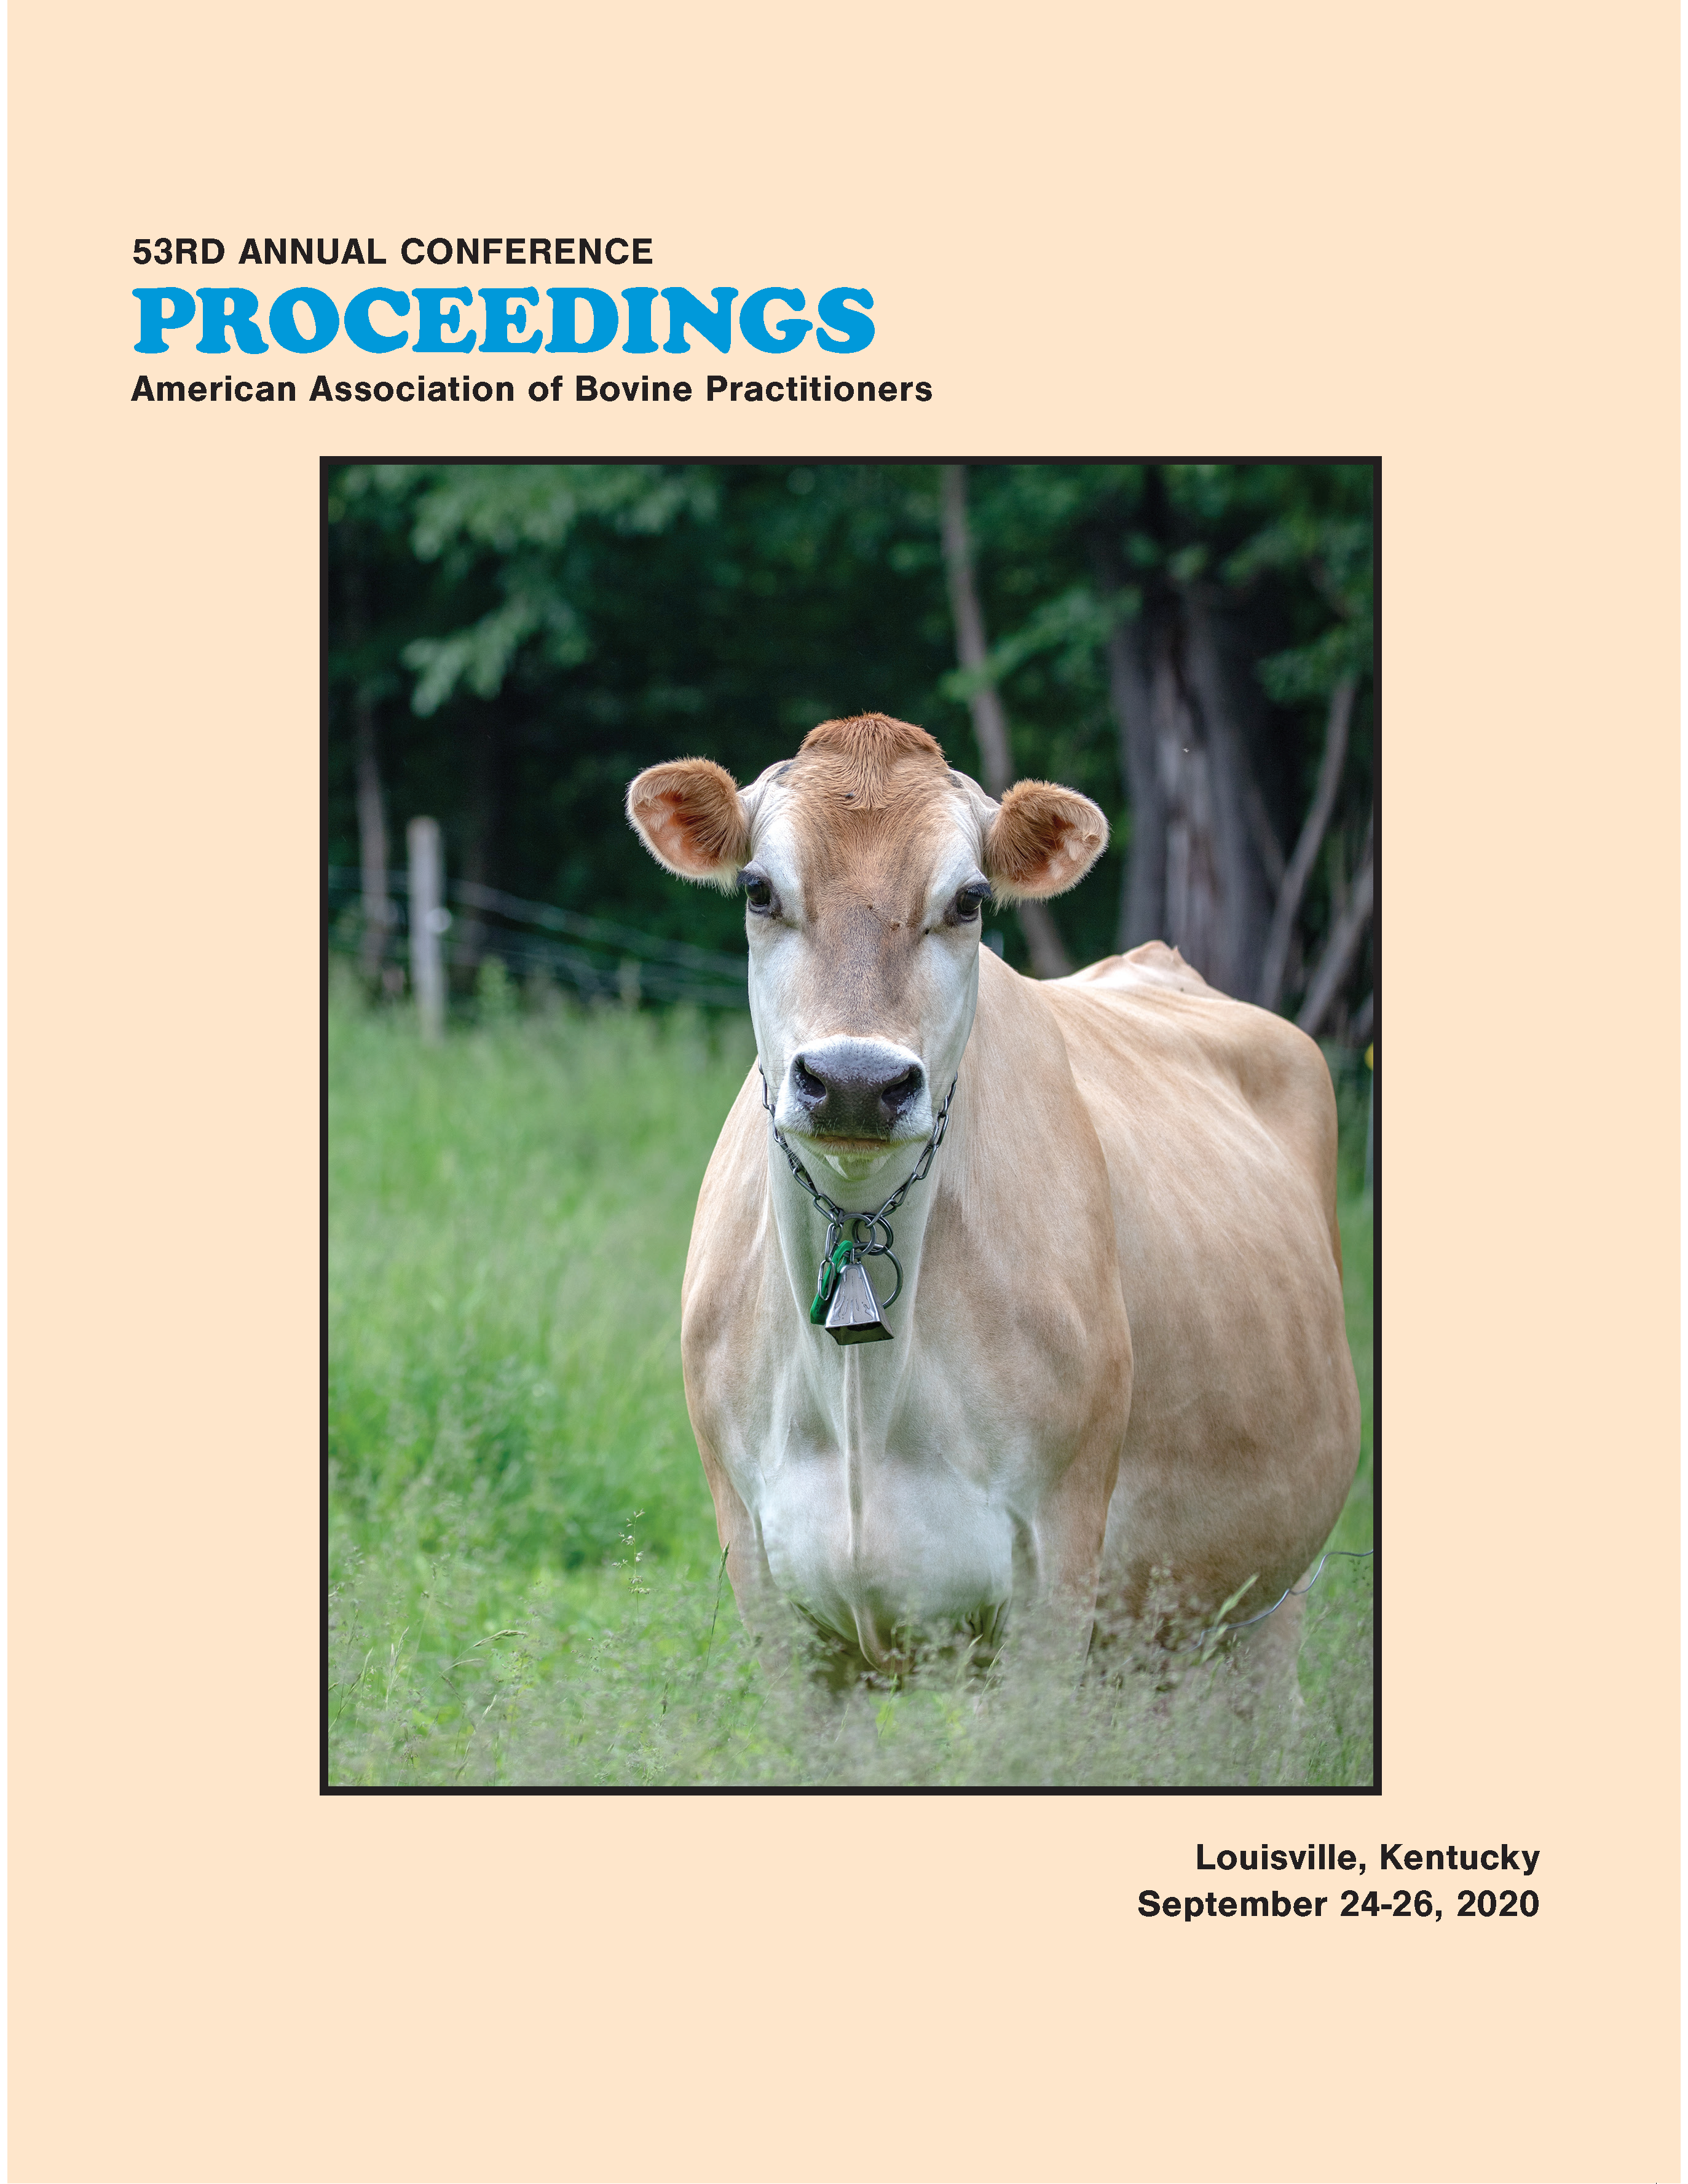 Cover image of the 53rd Conference Proceedings: A photo of a lone cow with a bell in a field.